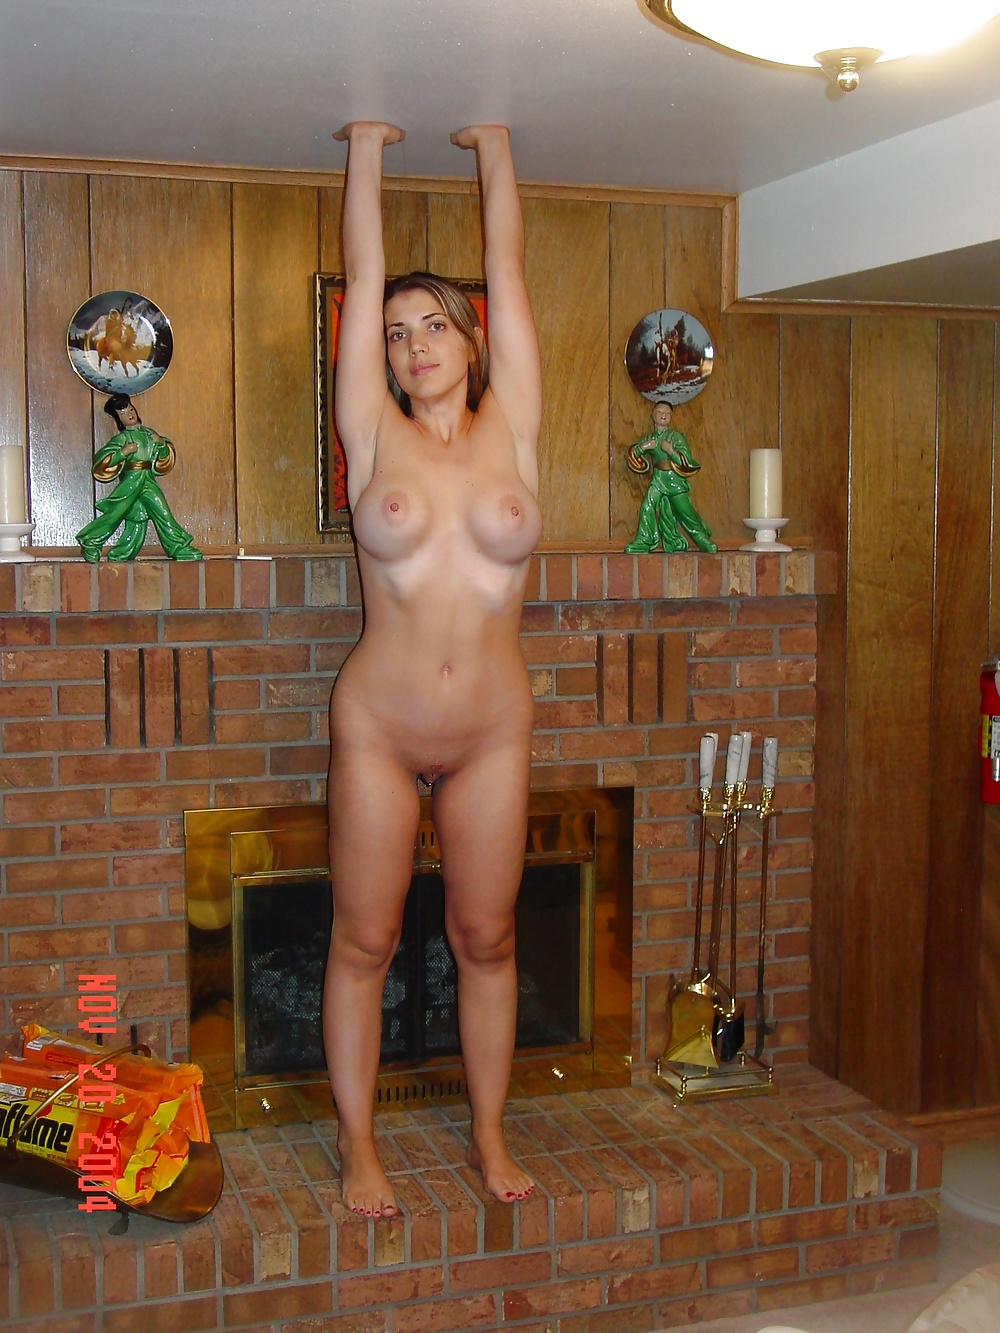 Wife Love To Be Nude Everywhere - 61 Pics - Xhamstercom-8243